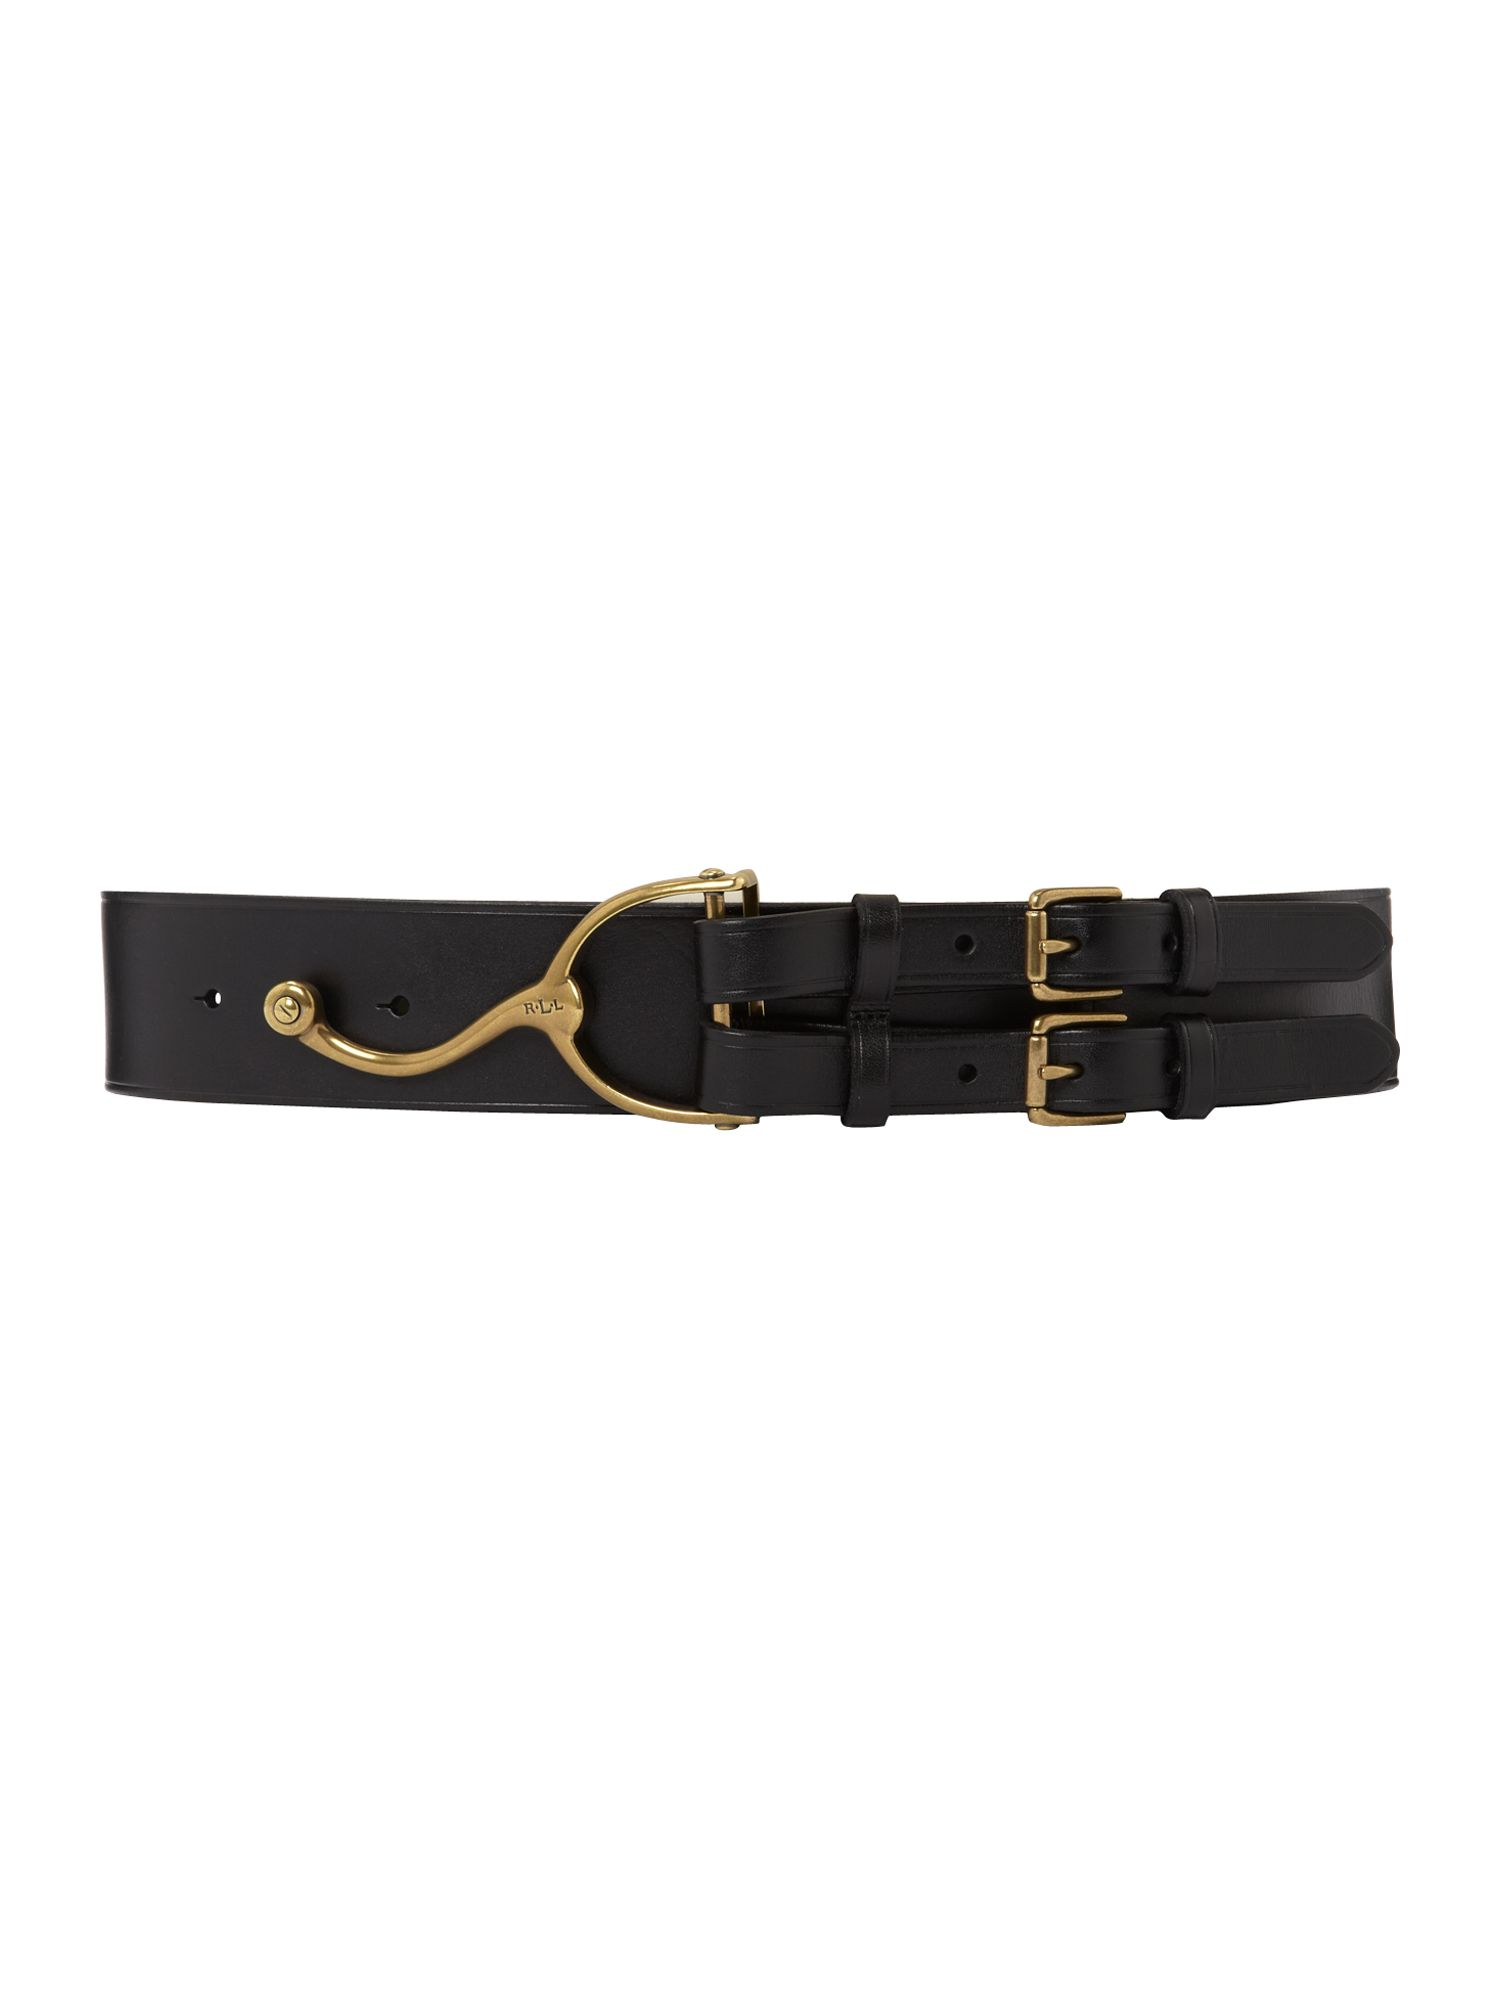 Vachetta belt with stirrup buckle